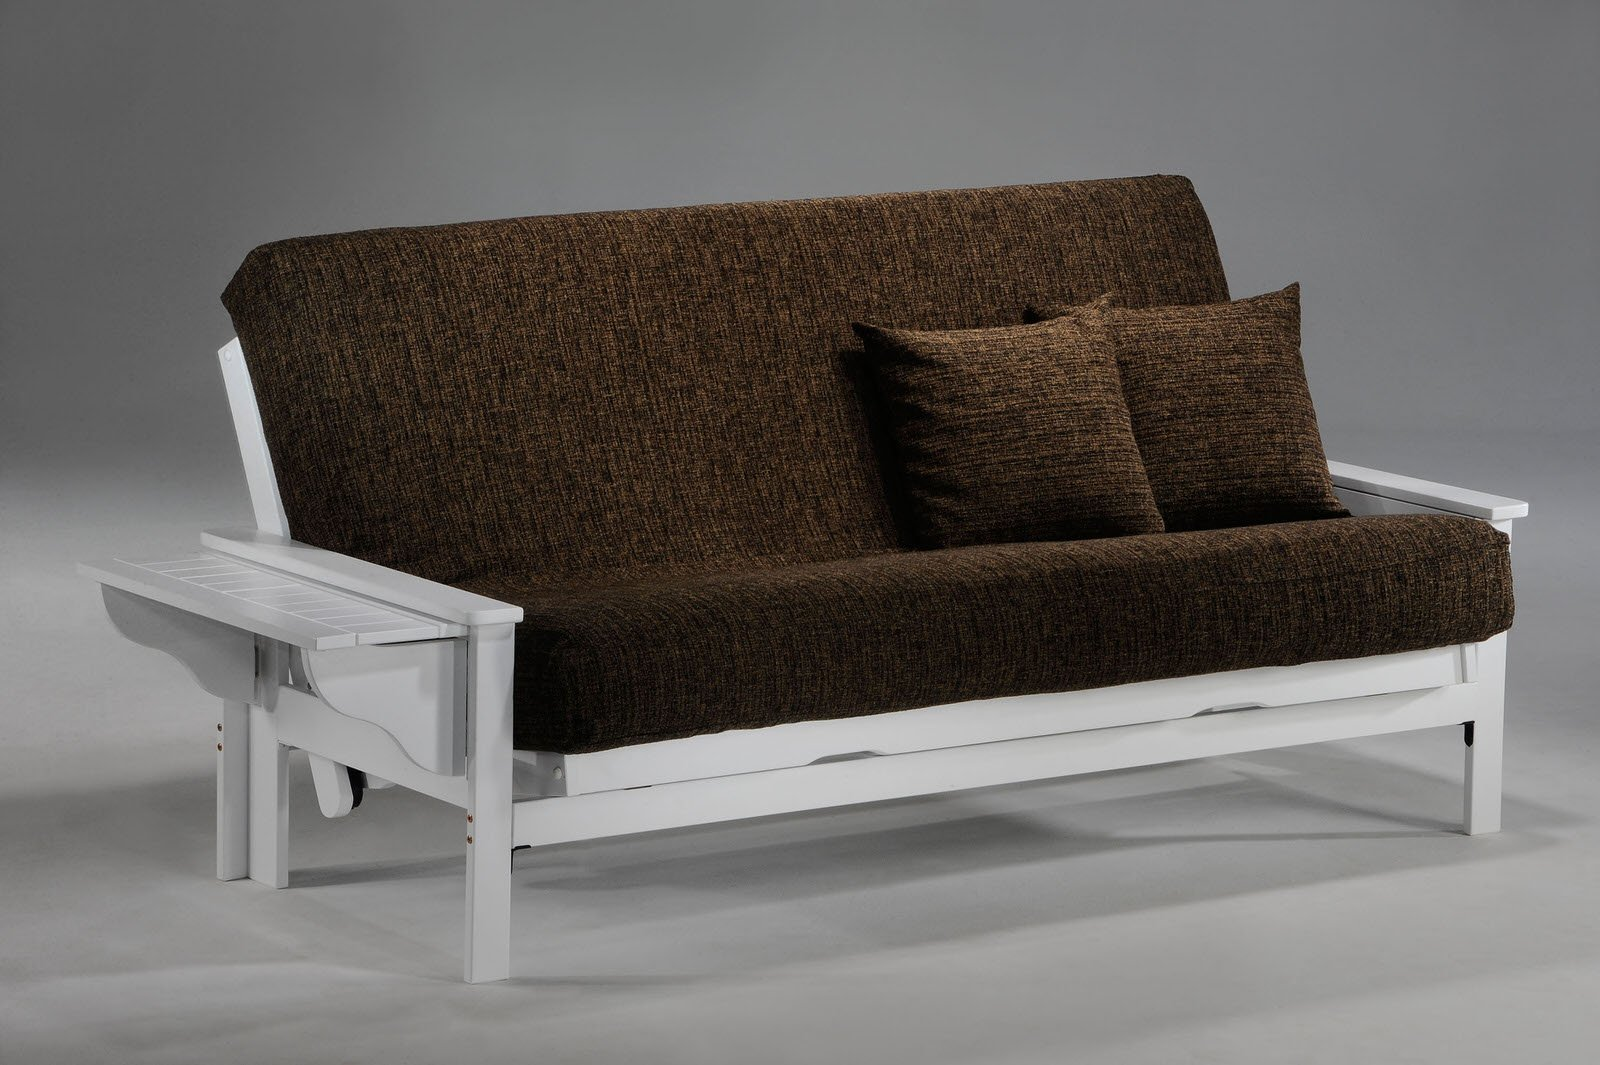 seattle standard futon frame by nightday furniture